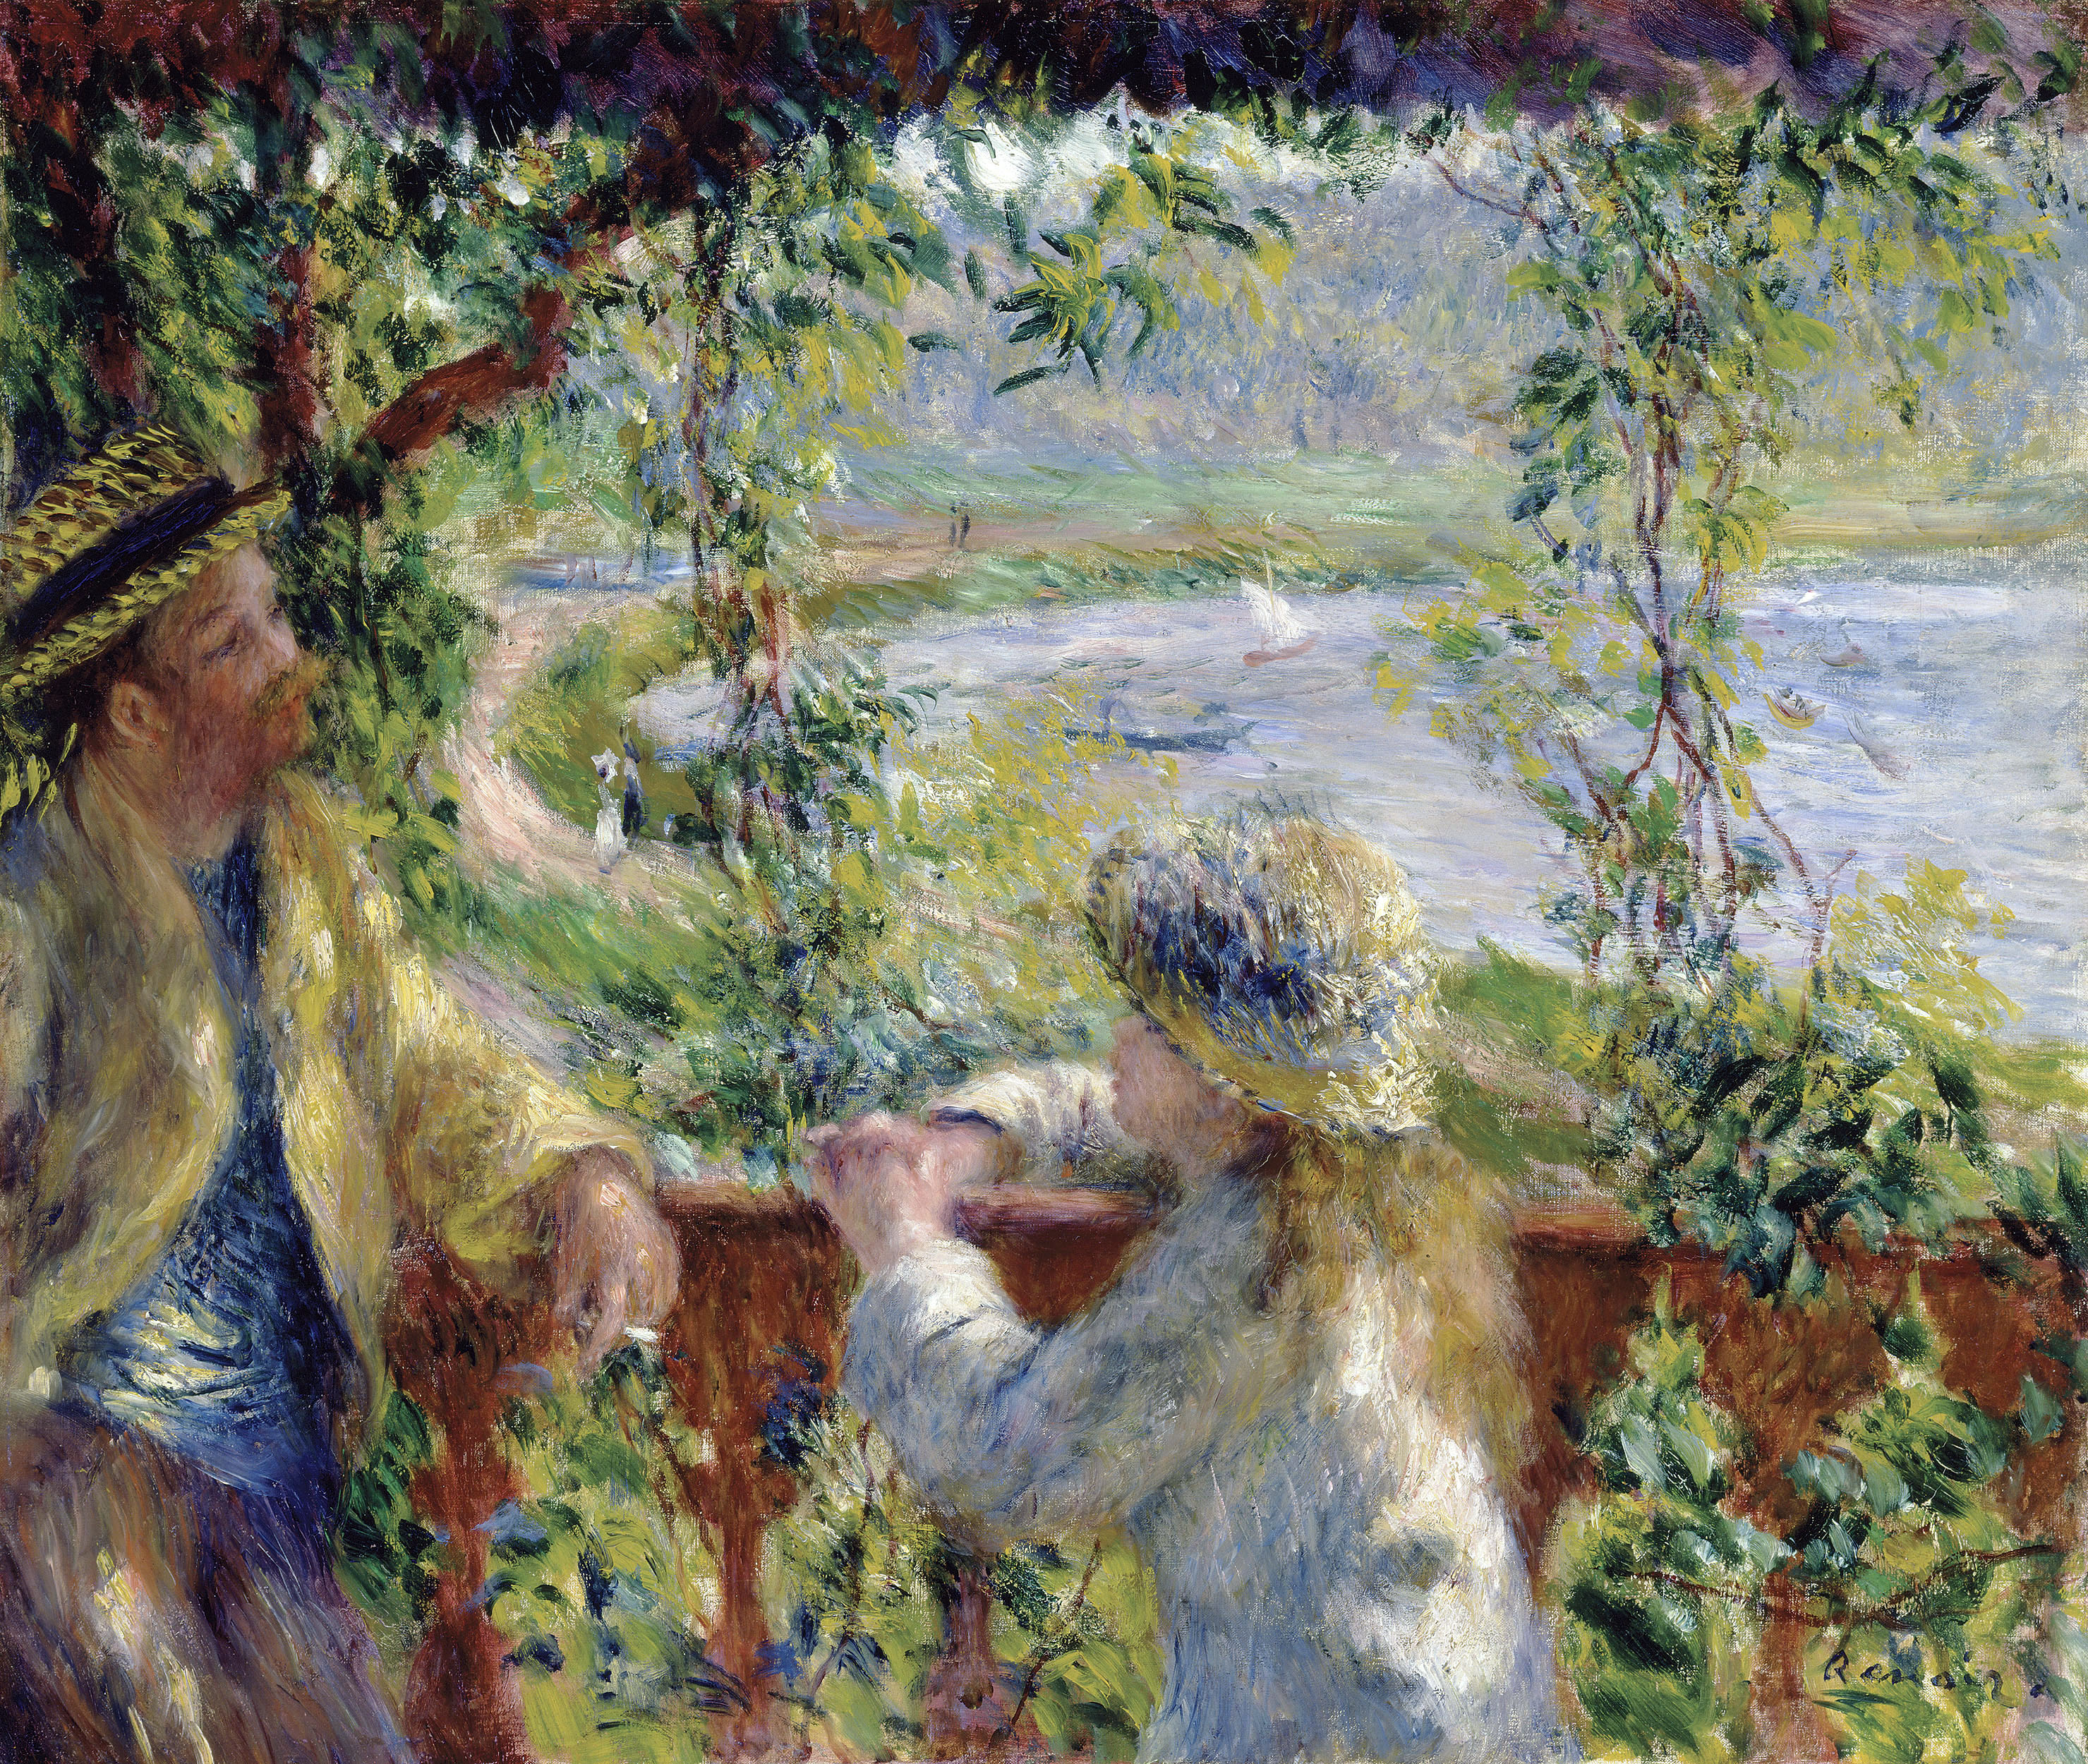 https://i2.wp.com/upload.wikimedia.org/wikipedia/commons/c/c5/Pierre-Auguste_Renoir_-_By_the_Water.jpg